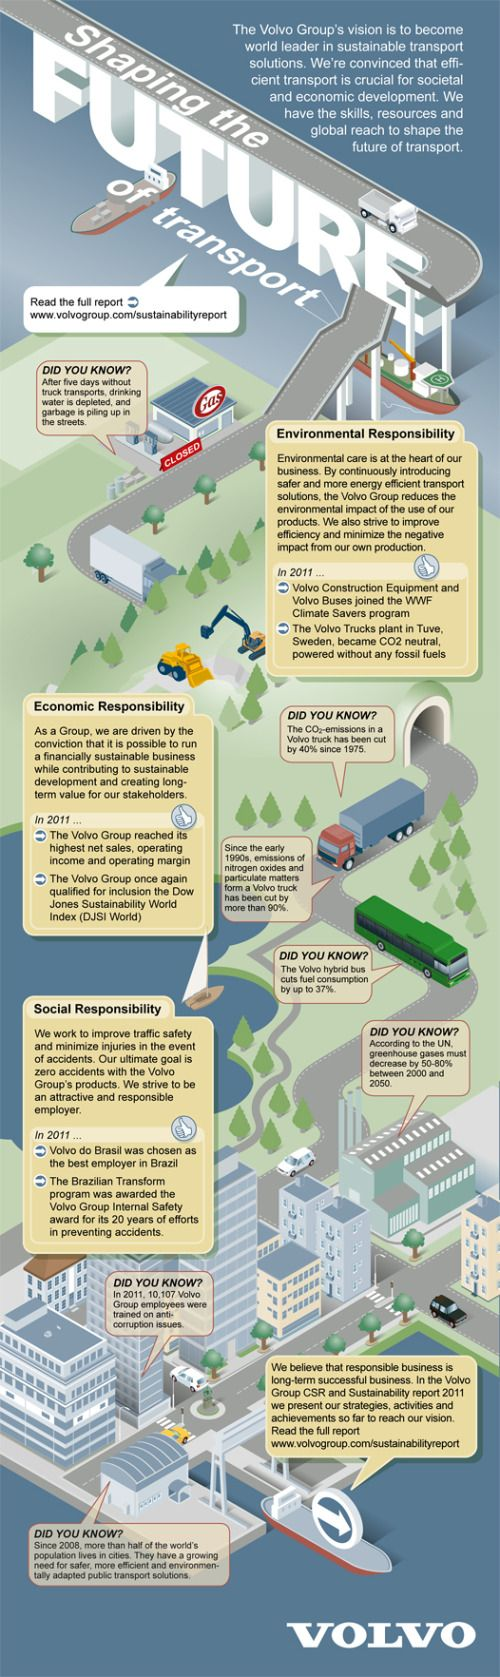 CSR and Sustainability Report: Volvo Shaping the Future of TransportVolvo Group, Future Infographic, Infographic Transportation, Green Infographic, Sustainable Reports, Shape, Transportation Infographic, Cars Infographic, Sustainable Infographic